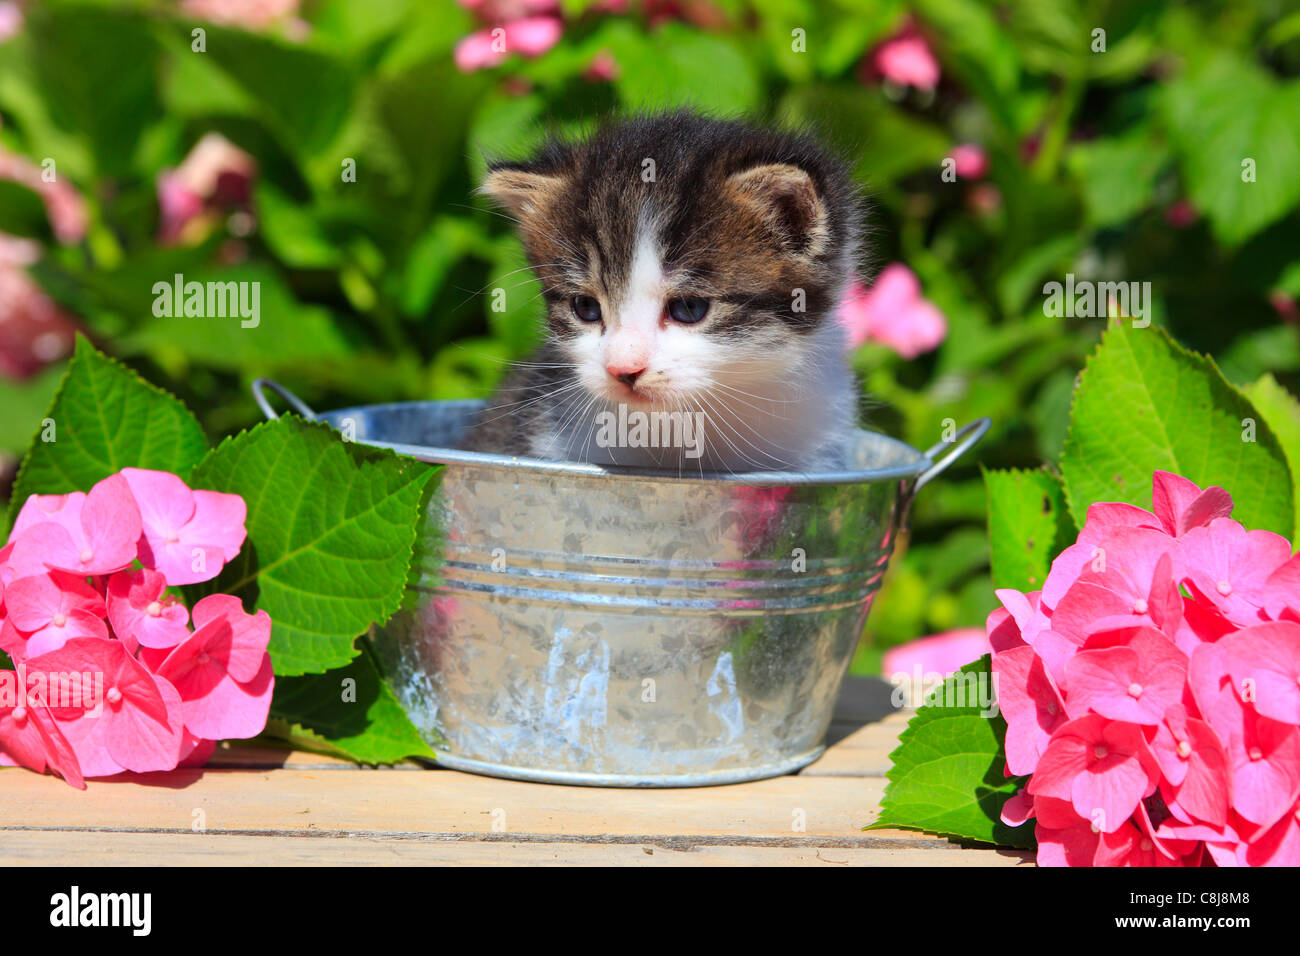 3 weeks, flower, flowers, garden, house, home, Animal, domestic animal, pet, young, cat, jug, kitten, tiger, Tigerli, Stock Photo